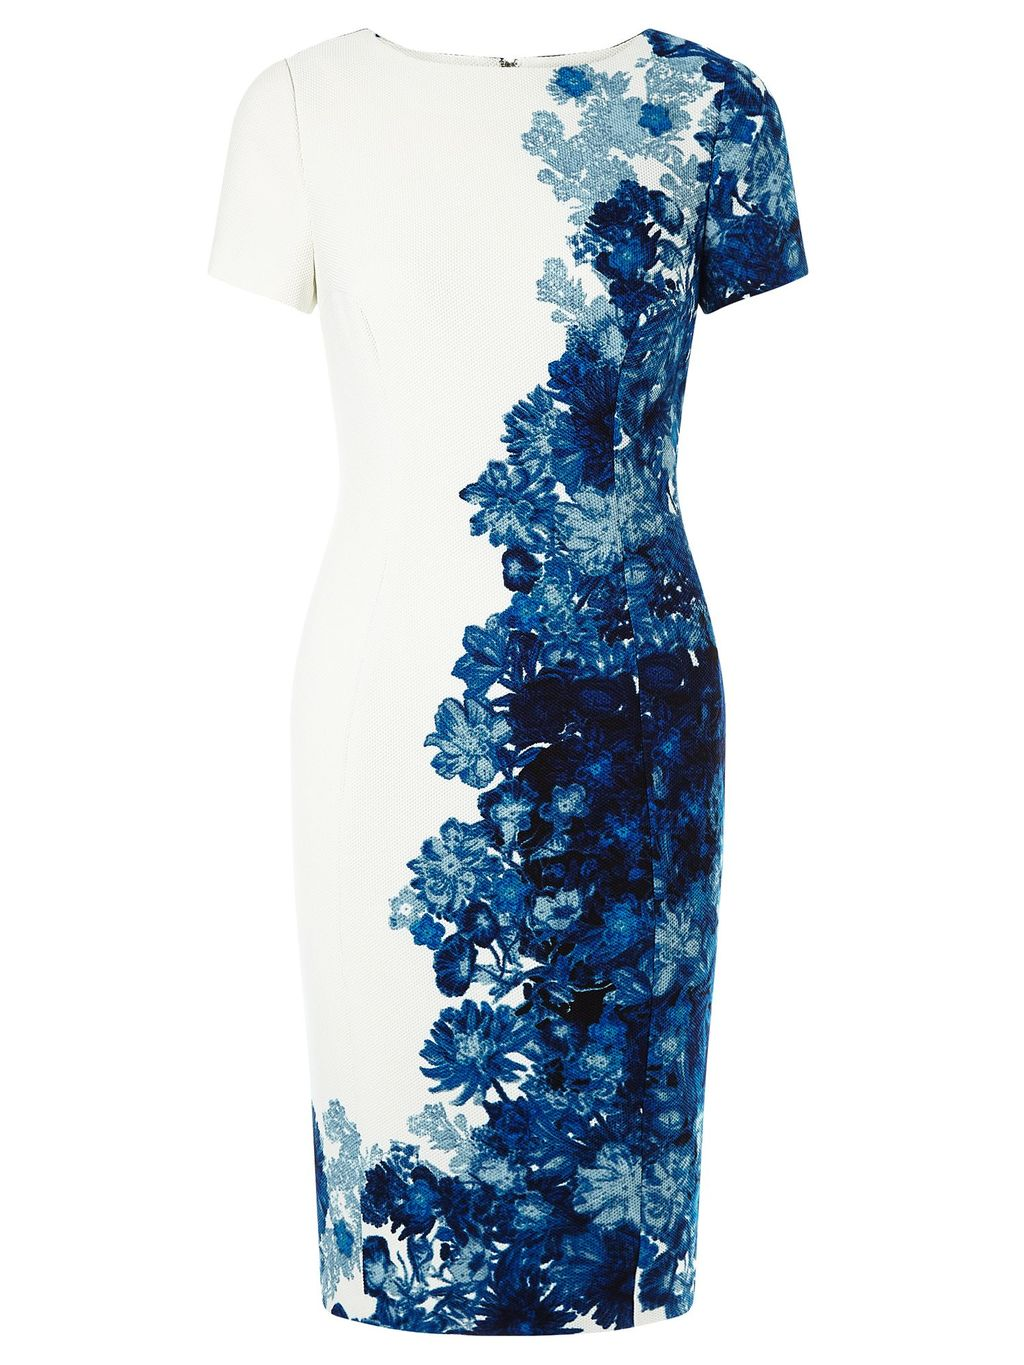 Floral Sheath Dress, Blue Multi - style: shift; fit: tailored/fitted; predominant colour: white; secondary colour: royal blue; length: just above the knee; fibres: polyester/polyamide - stretch; occasions: occasion, creative work; neckline: crew; sleeve length: short sleeve; sleeve style: standard; pattern type: fabric; pattern size: big & busy; pattern: florals; texture group: woven light midweight; season: s/s 2016; wardrobe: highlight